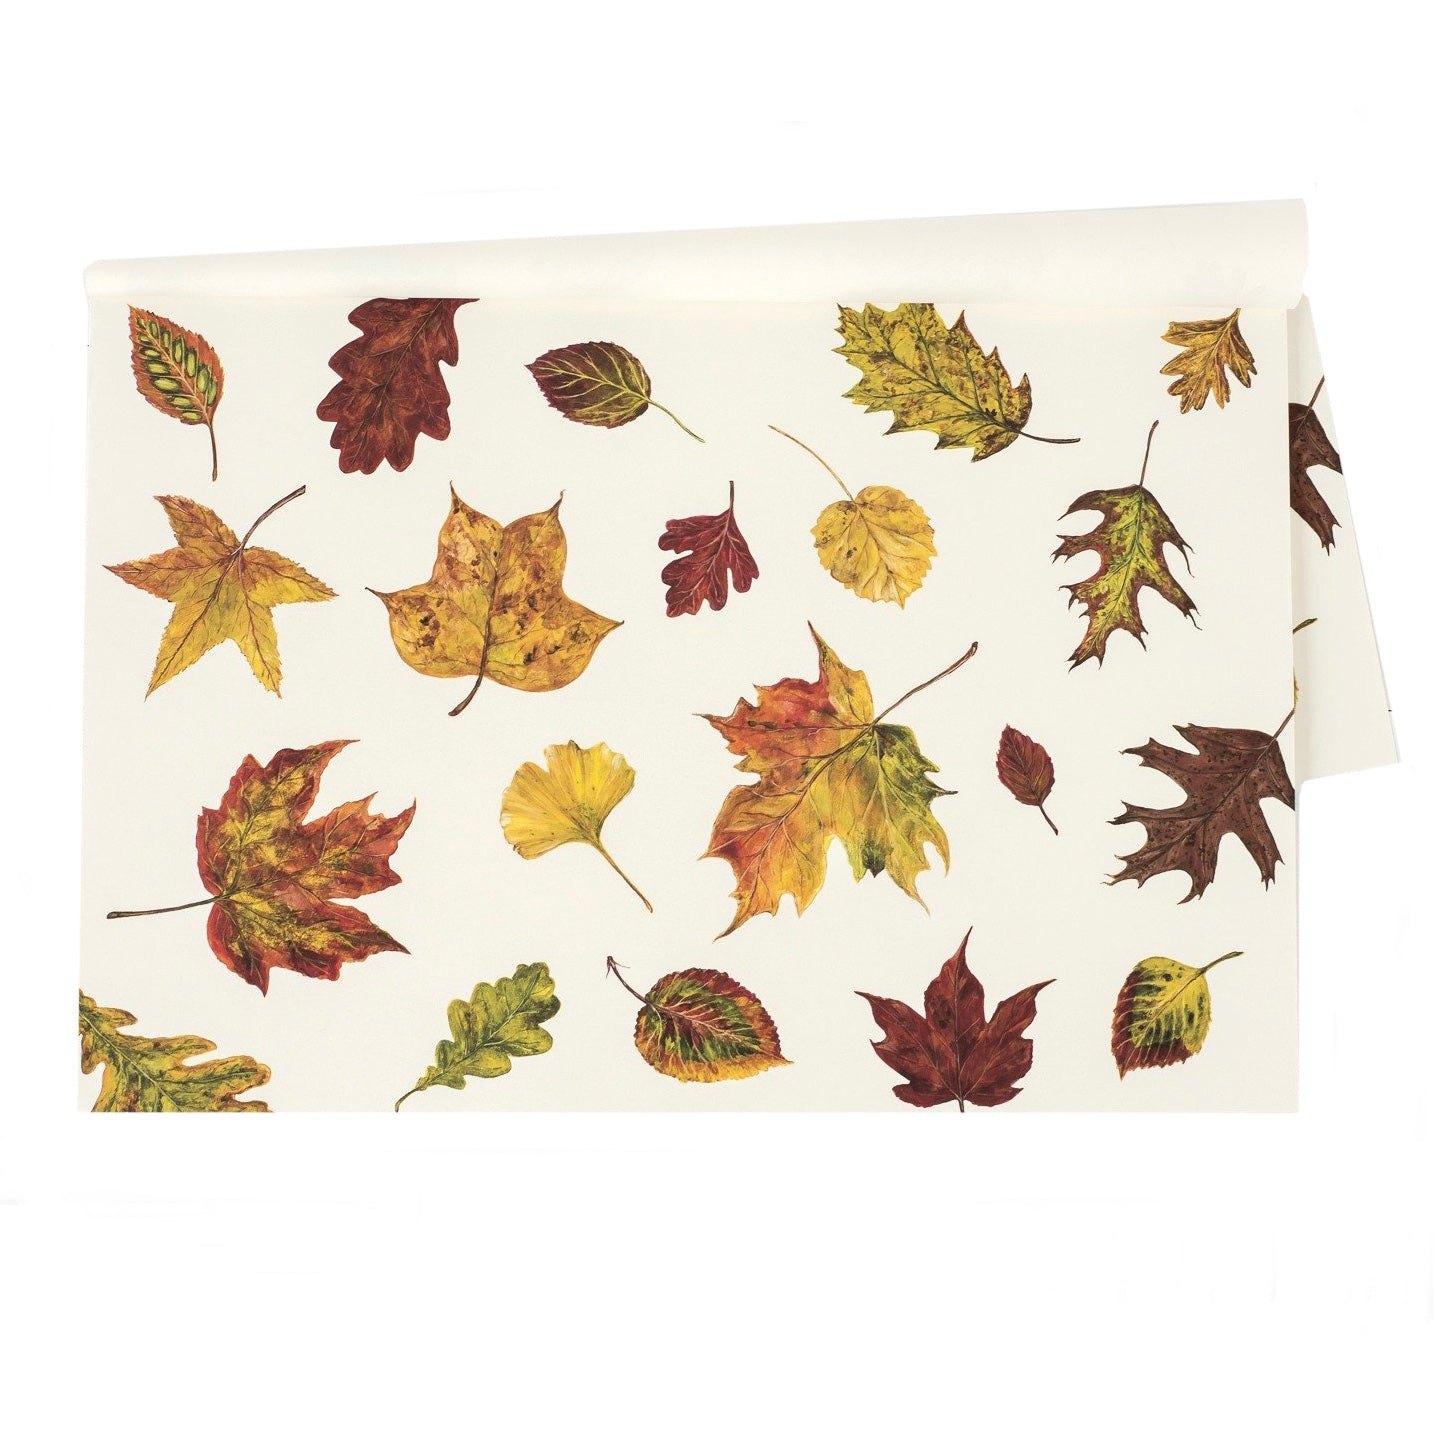 e2765d5d8d2ec Hester & Cook Fall Foliage Paper Placemats - Putti Celebrations & Partyware  Canada